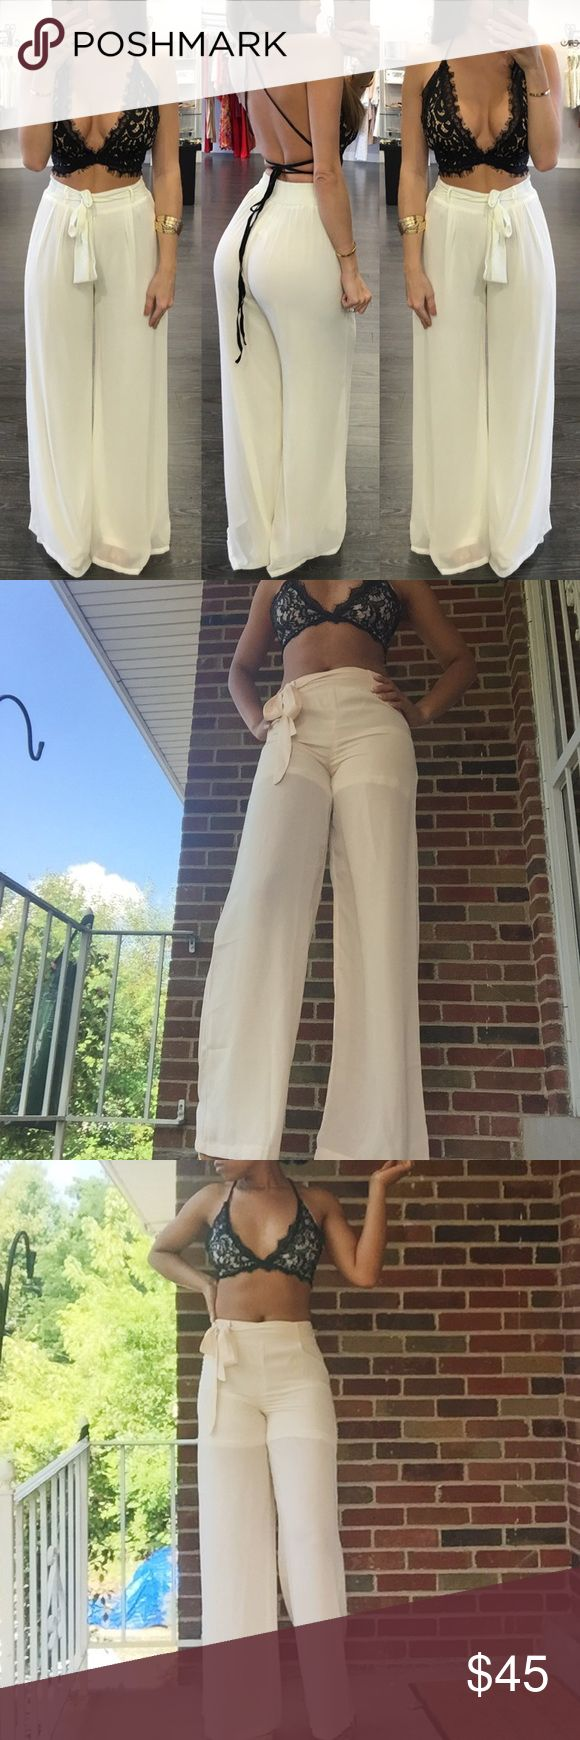 Wide Leg Pants and Bralette Set Beautiful Wide Leg Chiffon Pants and Lace Bralette Set. Off white and black. Pants are lined inside with shorts, Bralette is lined inside with satin. Fits Size XS-S. If you wear a medium or are wider in the hips, this will not fit. Pants are not stretchy. Pants Jumpsuits & Rompers